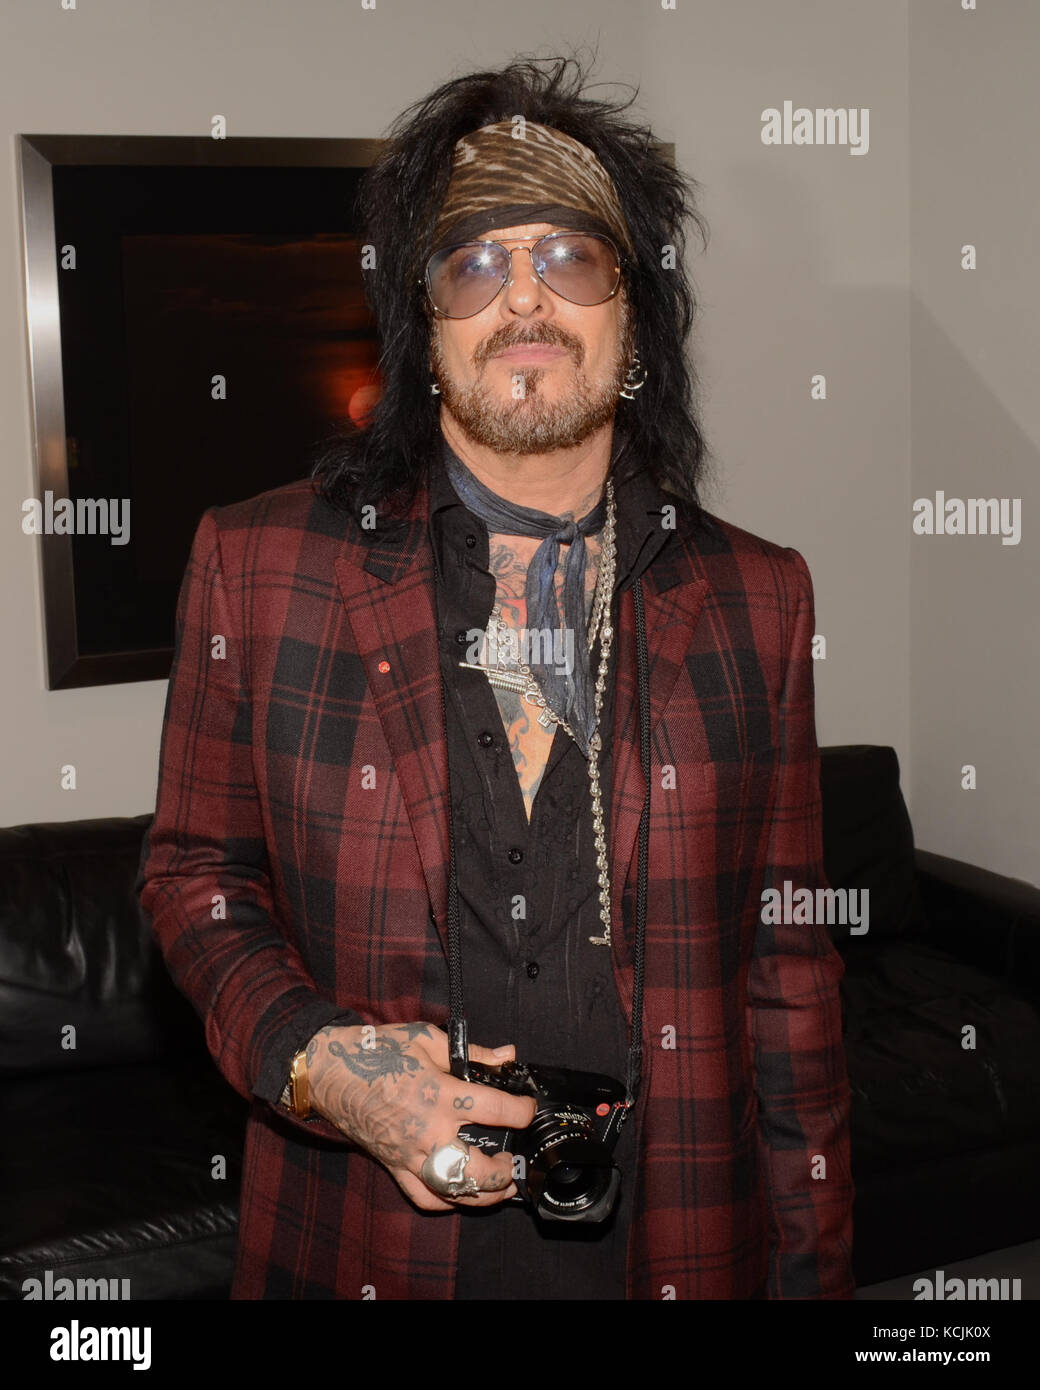 Nikki Sixx attends the Nikki Sixx Photo Exhibit 'Conversations with Angels' and Leica Q Launch at Leica - Stock Image